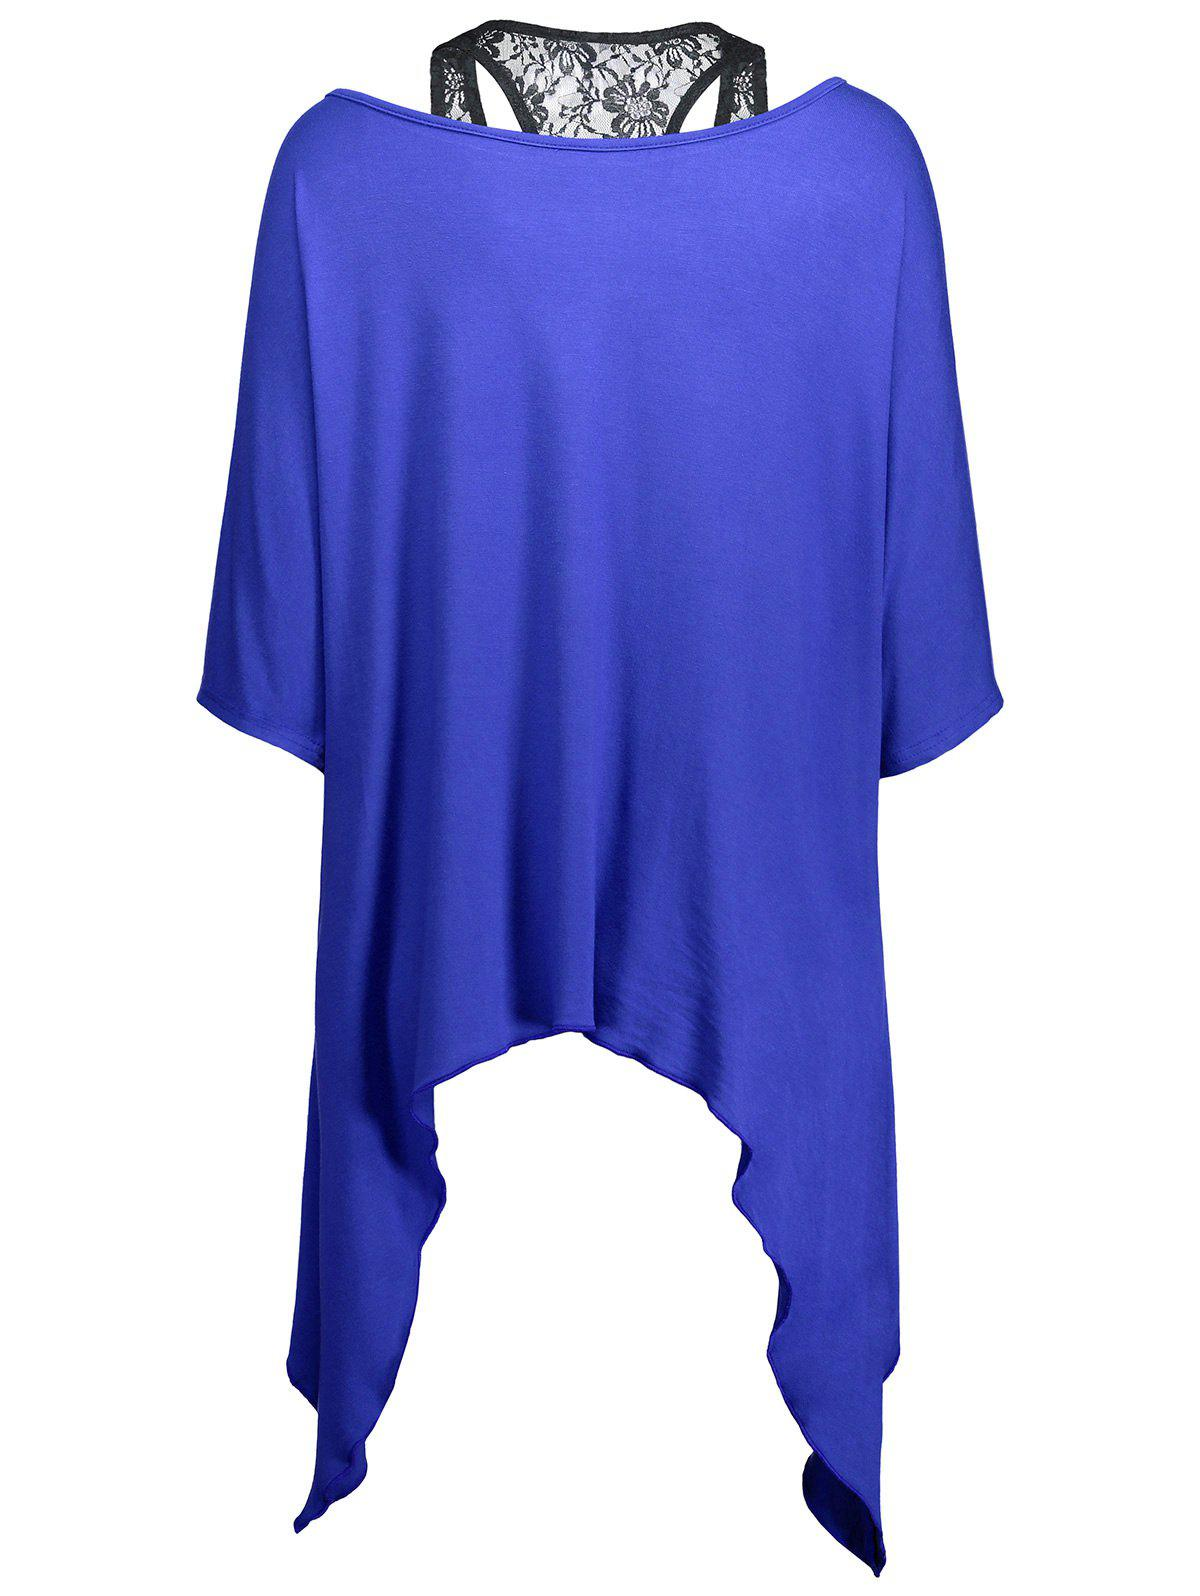 Handkerchief Batwing T-Shirt with Lace Tank Top - BLUE M